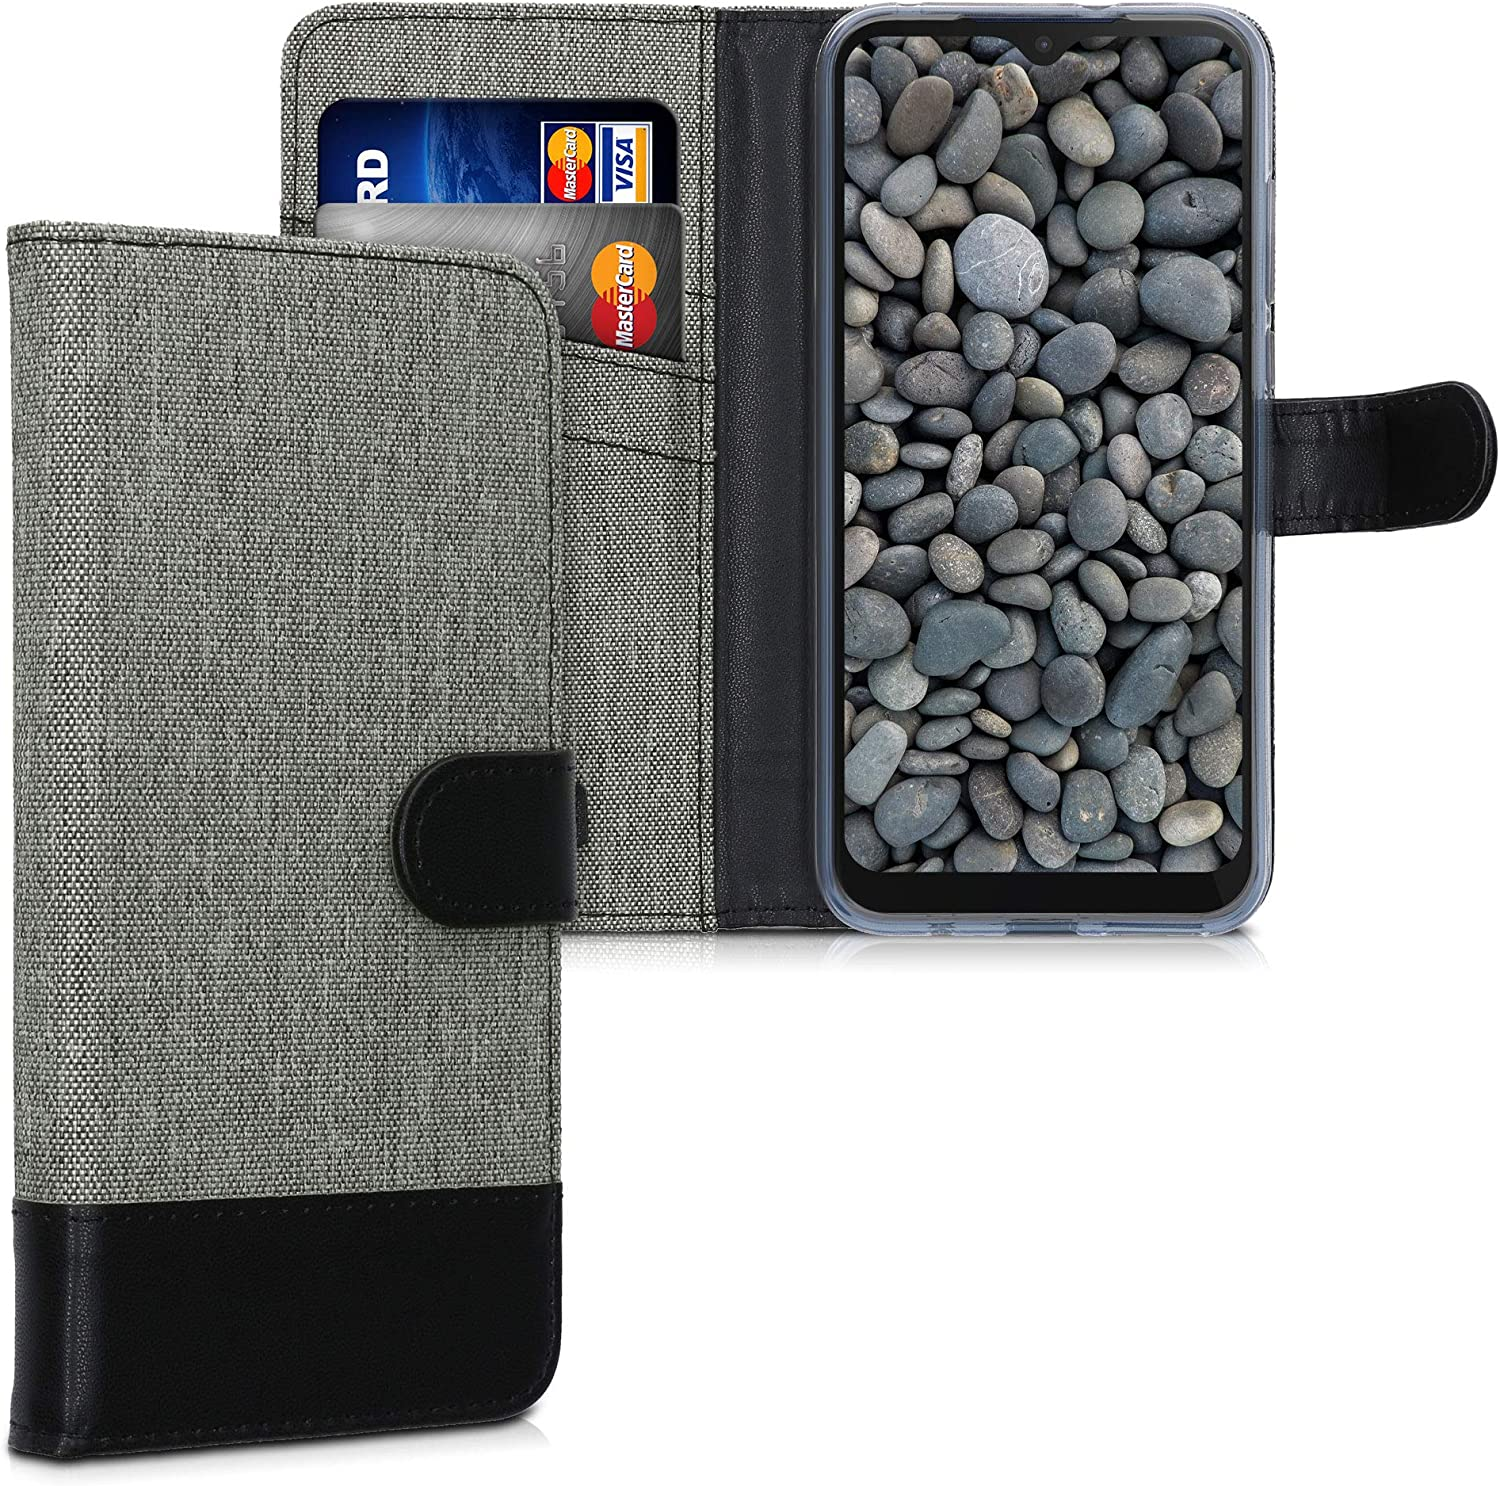 kwmobile Wallet Case Compatible with Motorola Moto E (2020) - Fabric Faux Leather Cover with Card Slots, Stand - Grey/Black